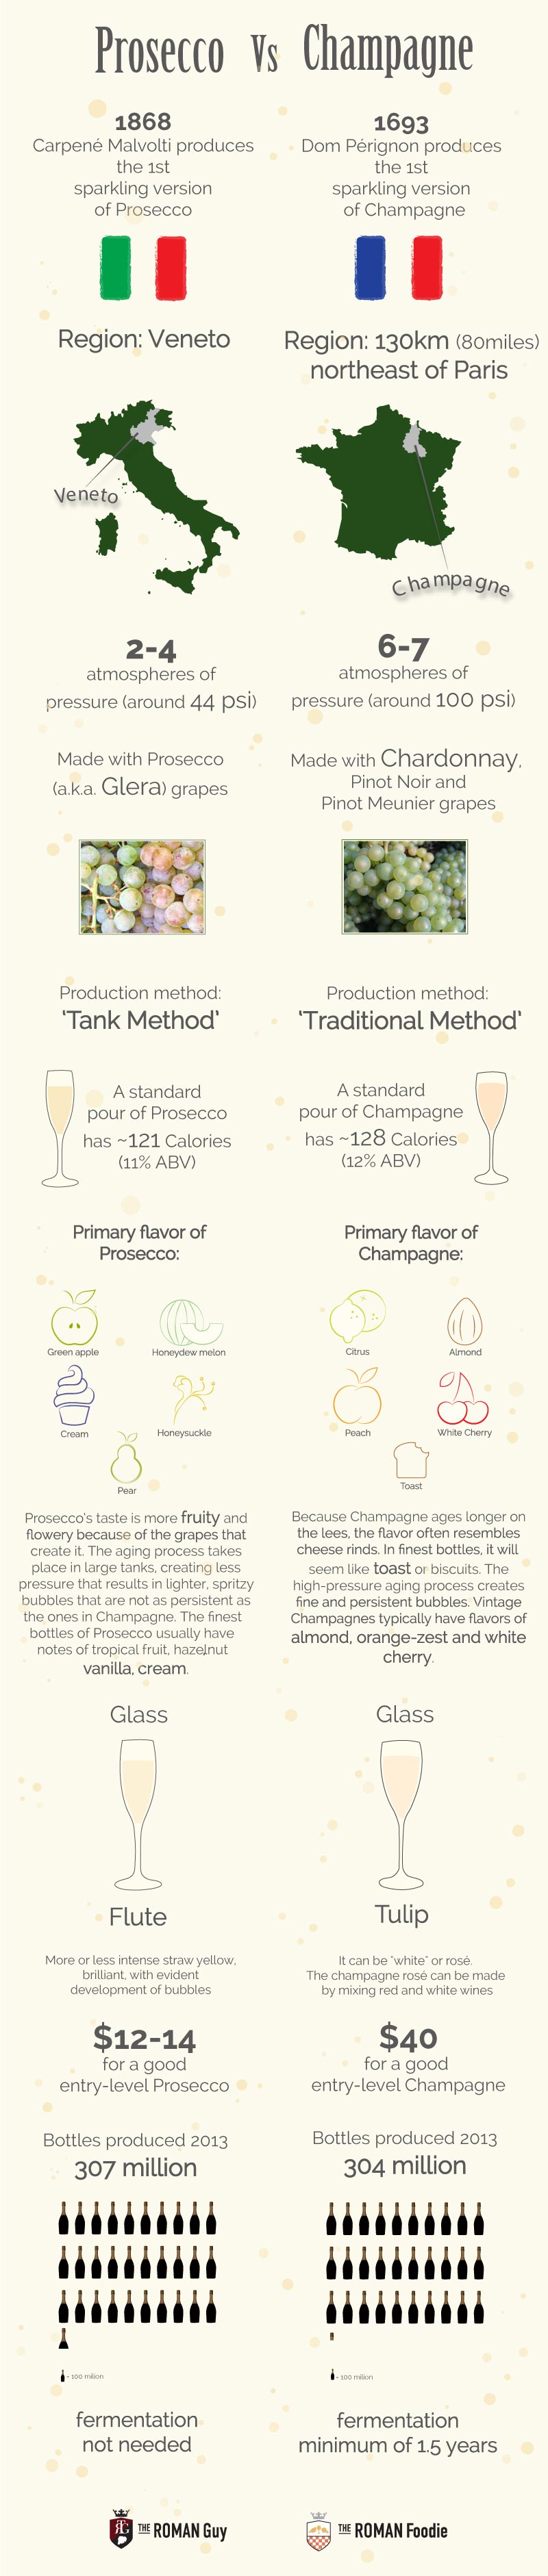 prosecco champagne differences infographic